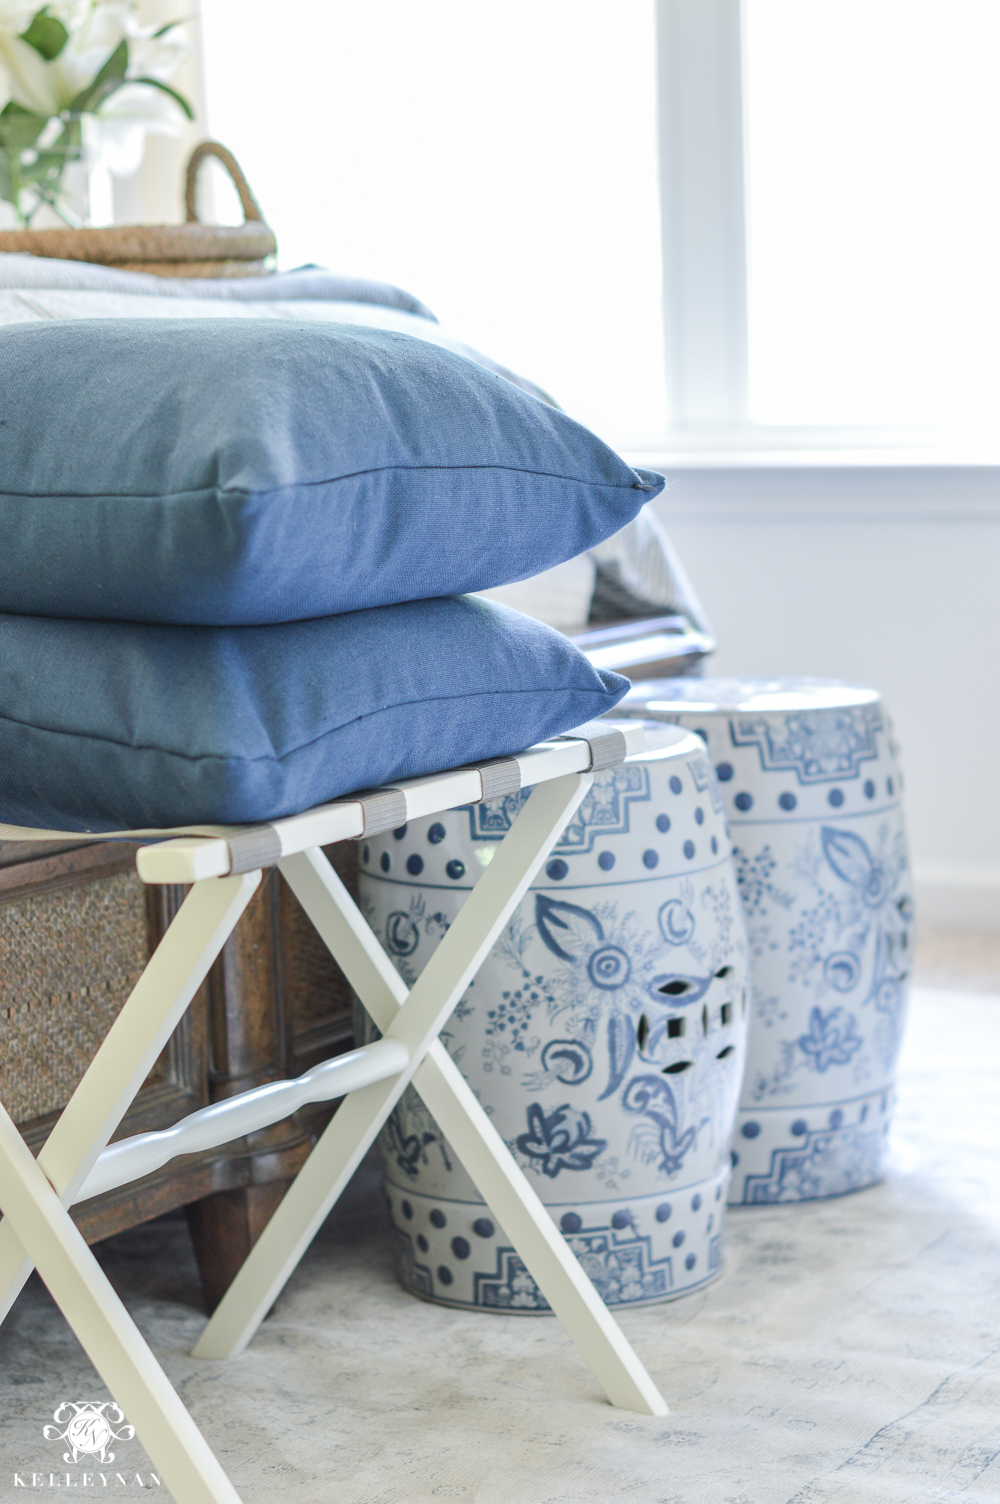 One Room Challenge Blue and White Guest Bedroom Reveal Before and After Makeover- luggage rack and garden stools at the foot of the bed